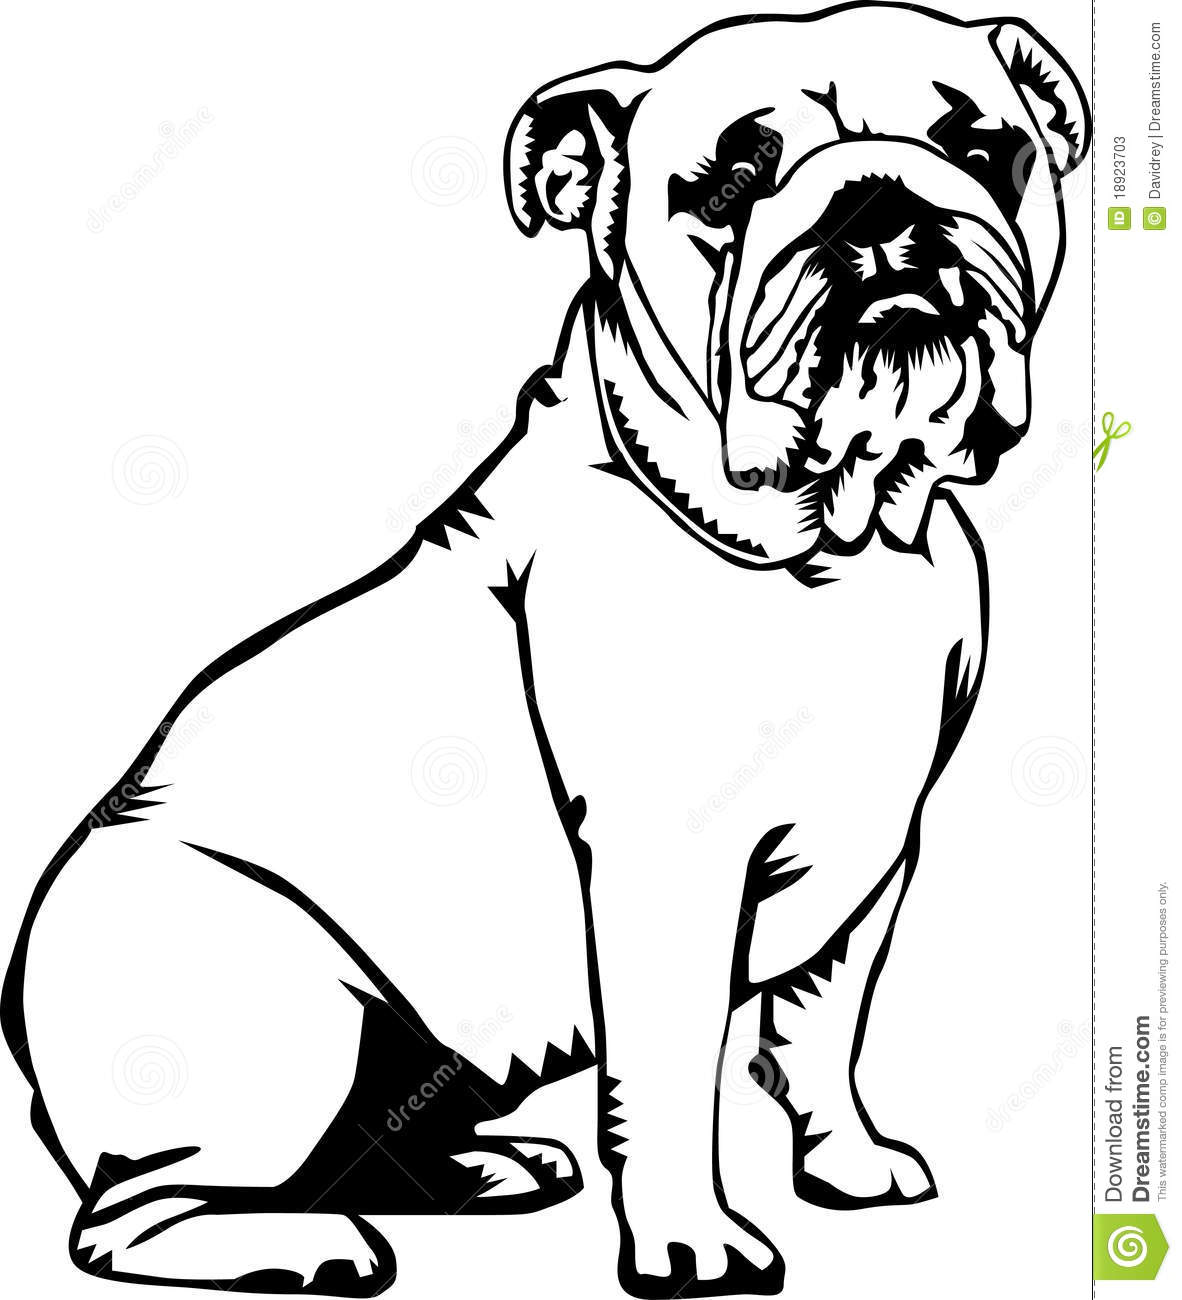 1182x1300 Drawn Bulldog Black And White